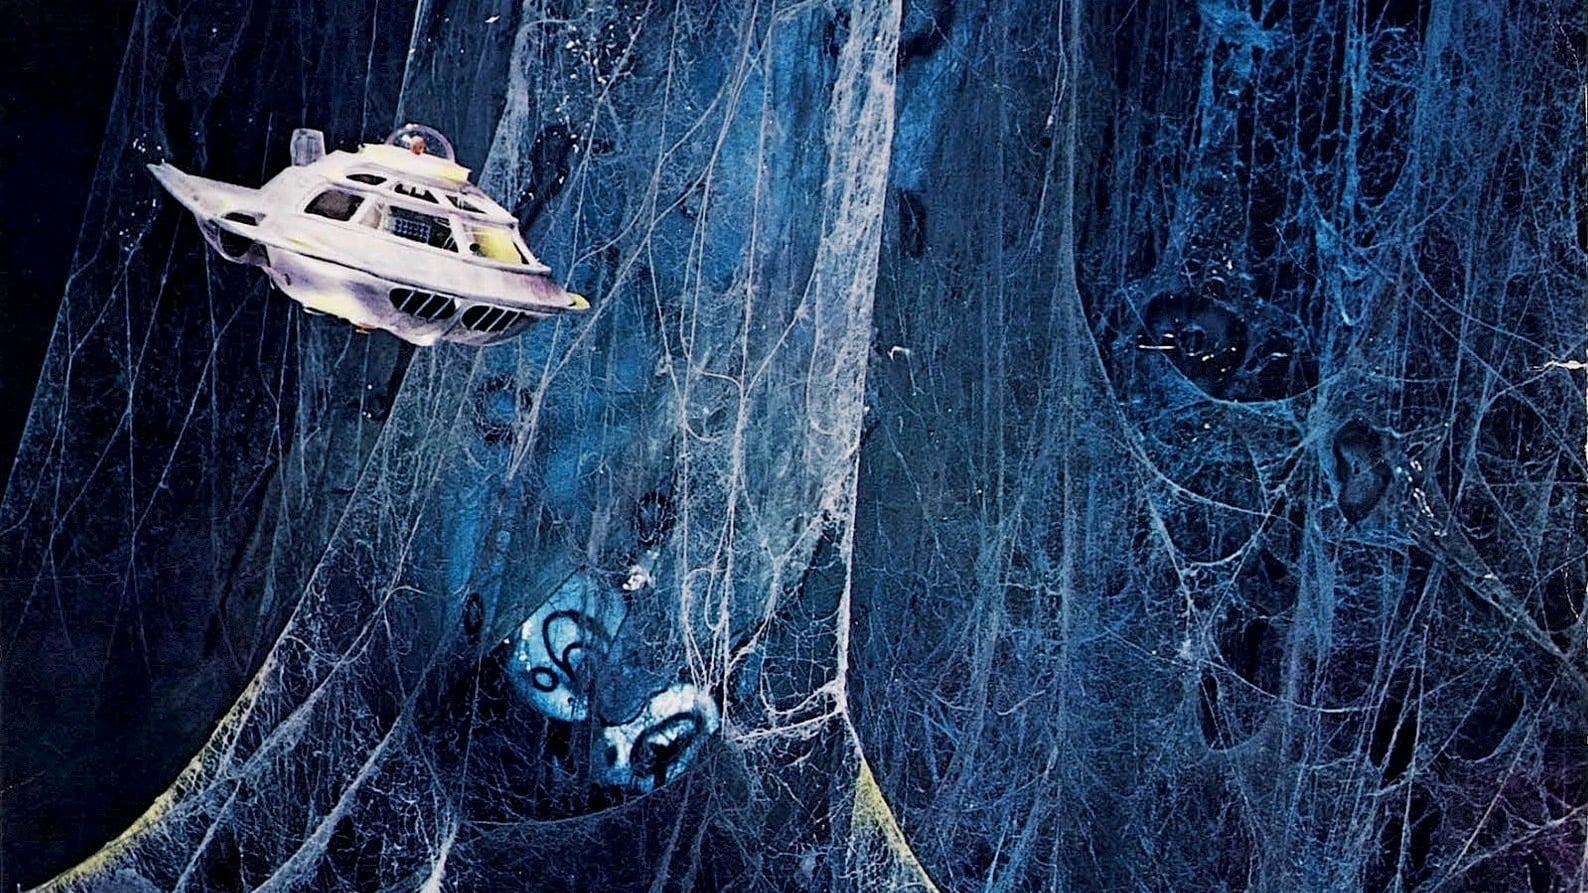 The submarine enters the brain in Fantastic Voyage (1966)